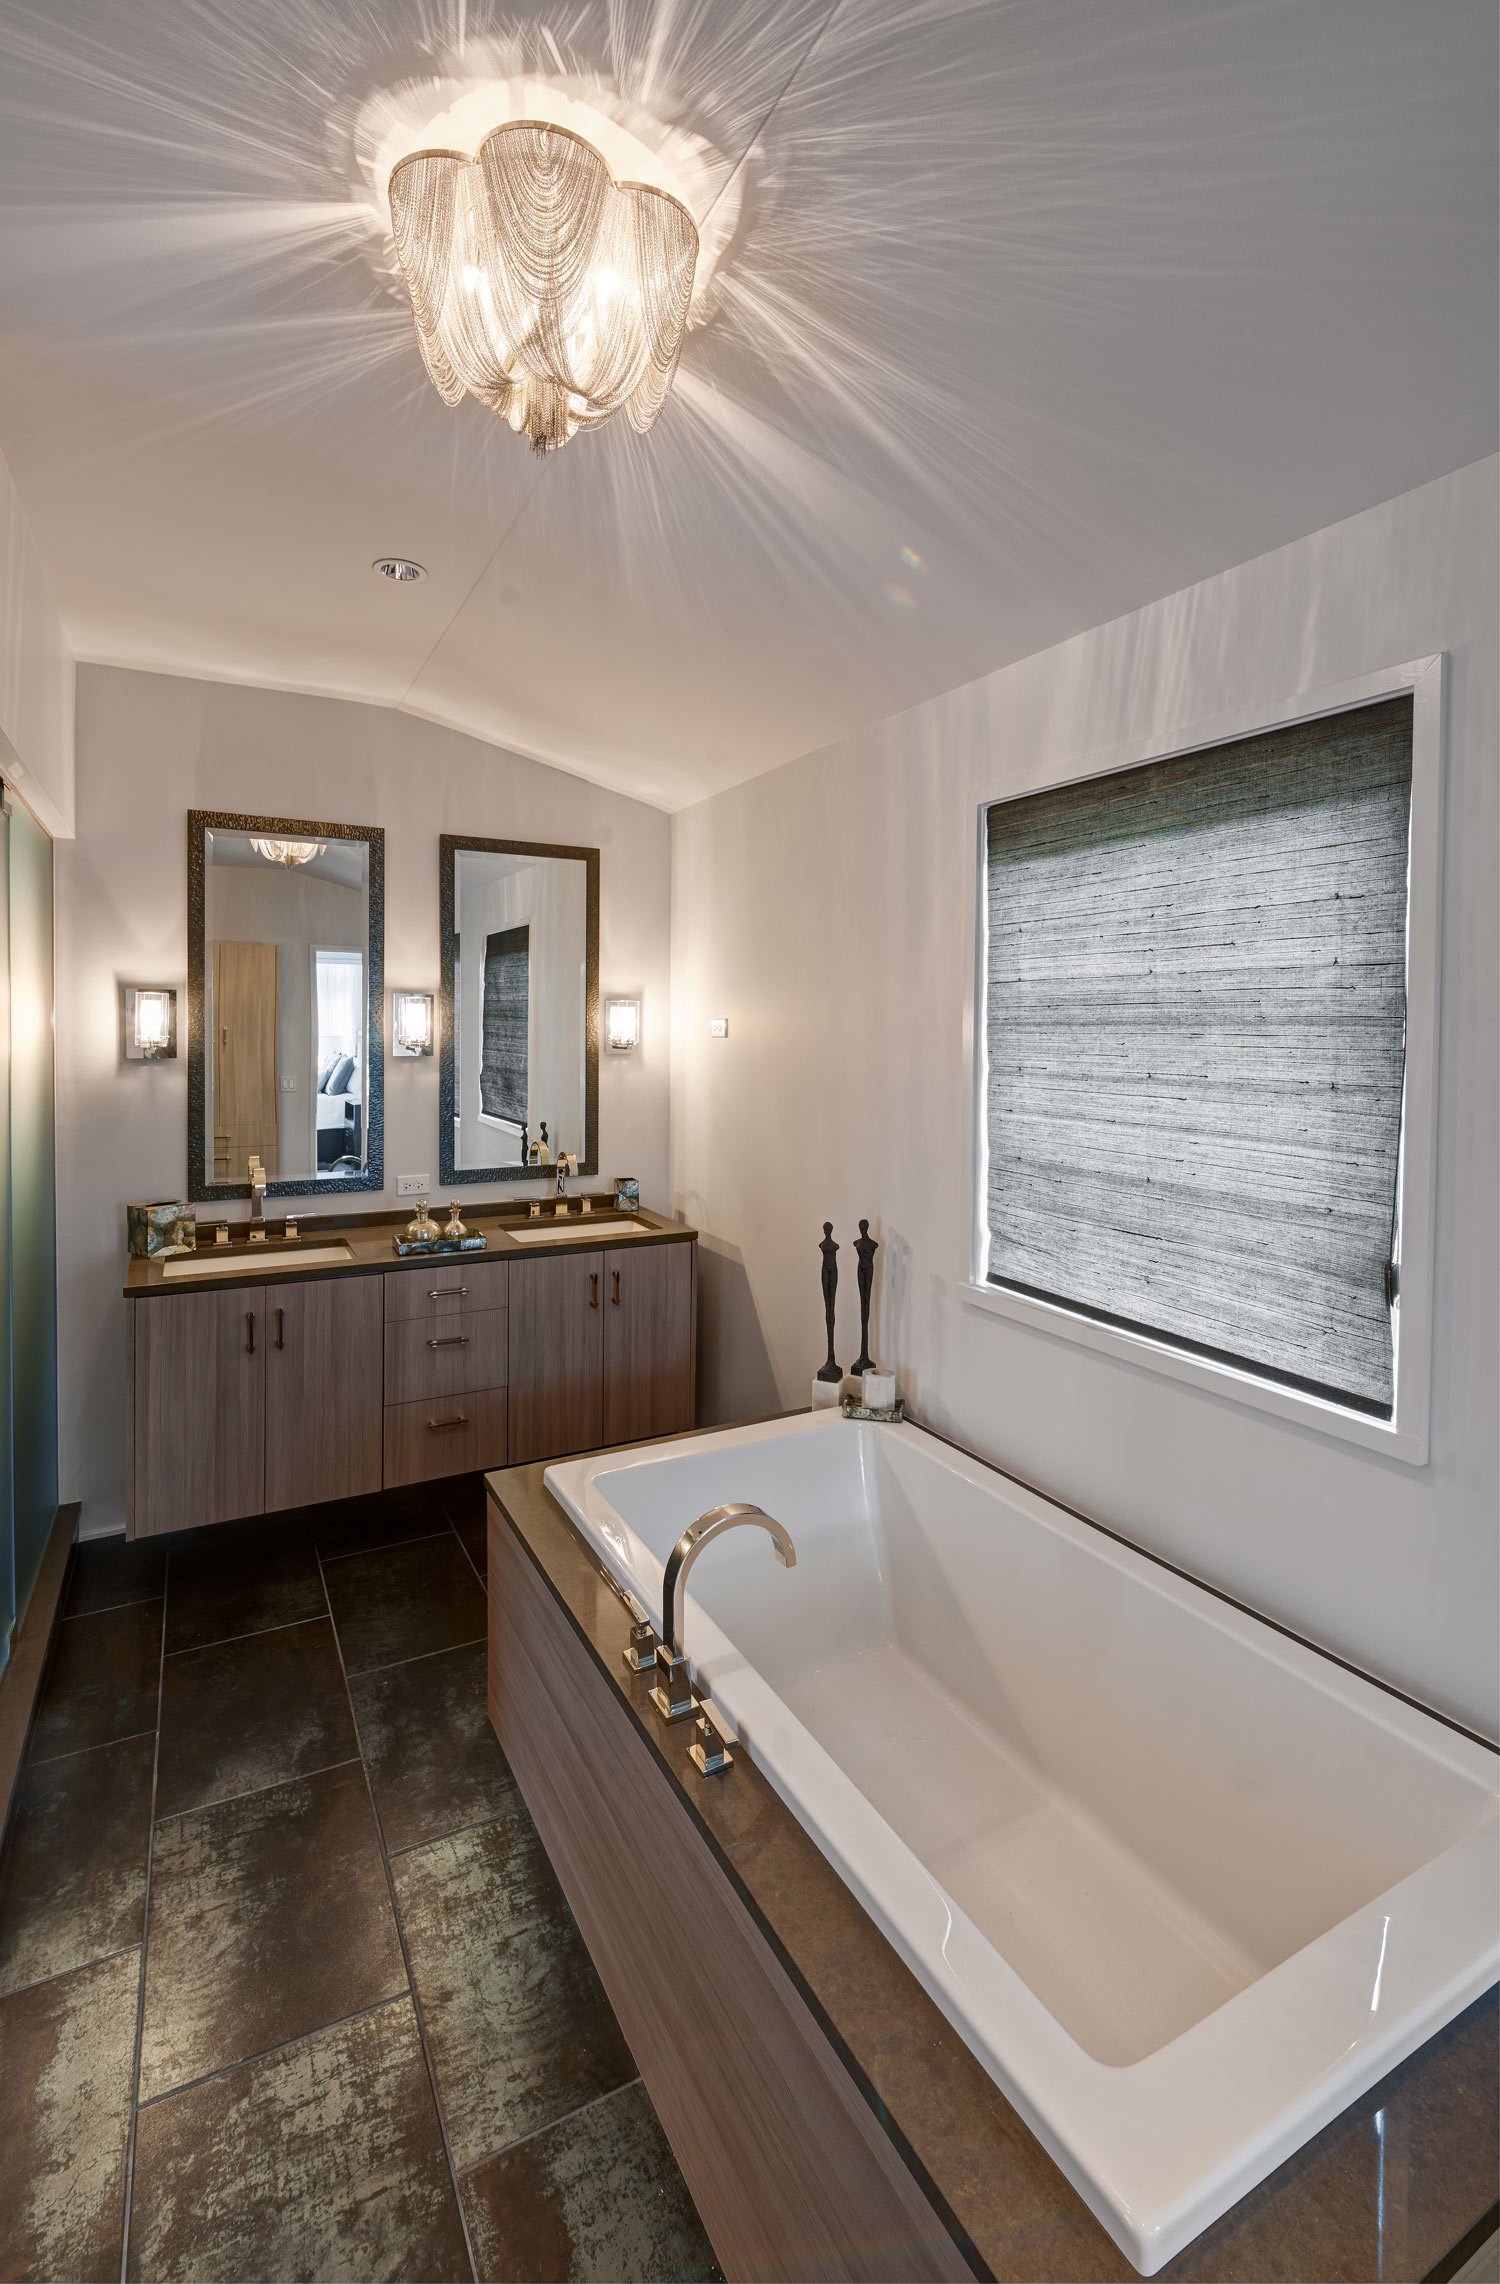 Fort Sheridan Ranch - Master Bathroom   Italian porcelain flooring in large 12 x 24staggeredpattern. Vanity and tubsurrounded in a custom wood finish. Overheadchain light fixture and three sconcesprovide beautiful lighting.